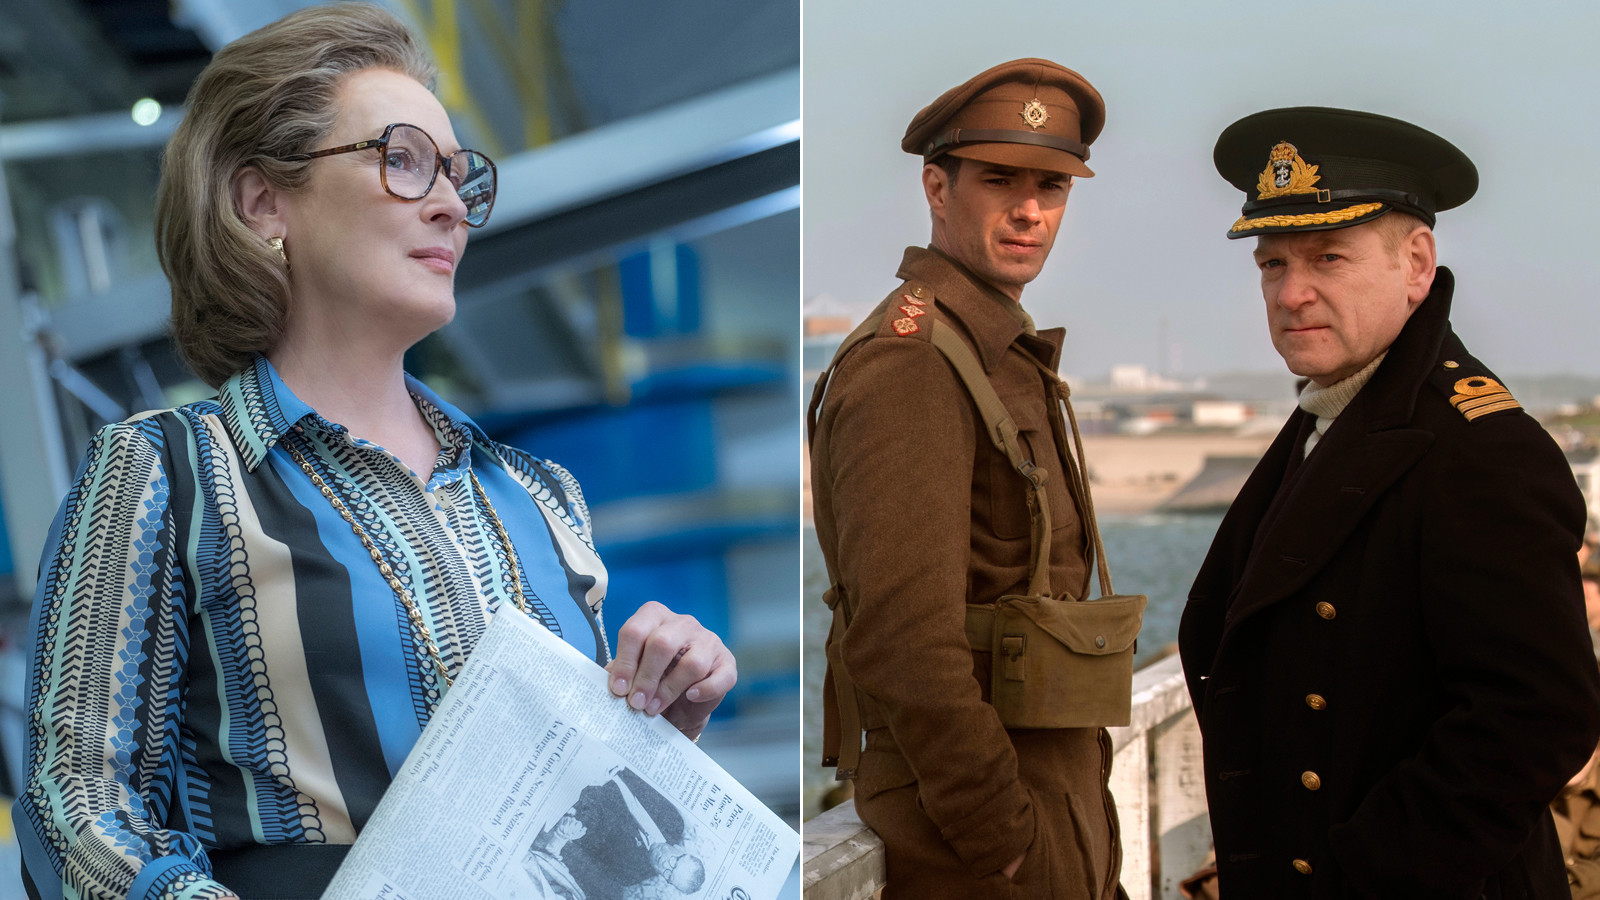 'The Post' and 'Dunkirk'